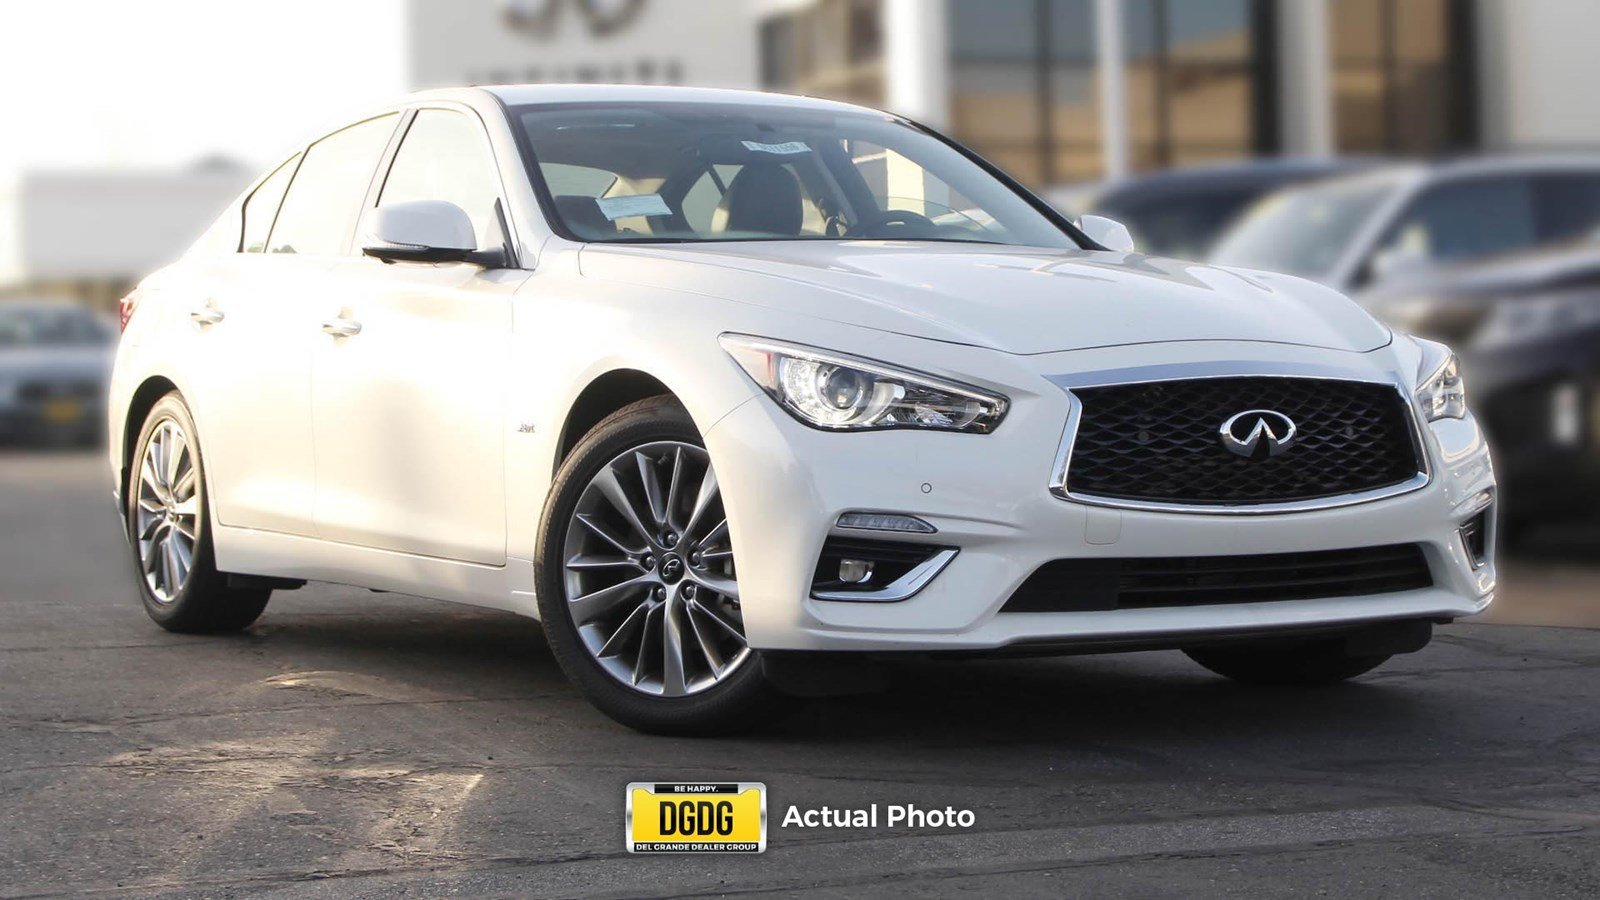 2018 INFINITI Q50 3.0t LUXE Proassist, Essential, Sensory Package AWD